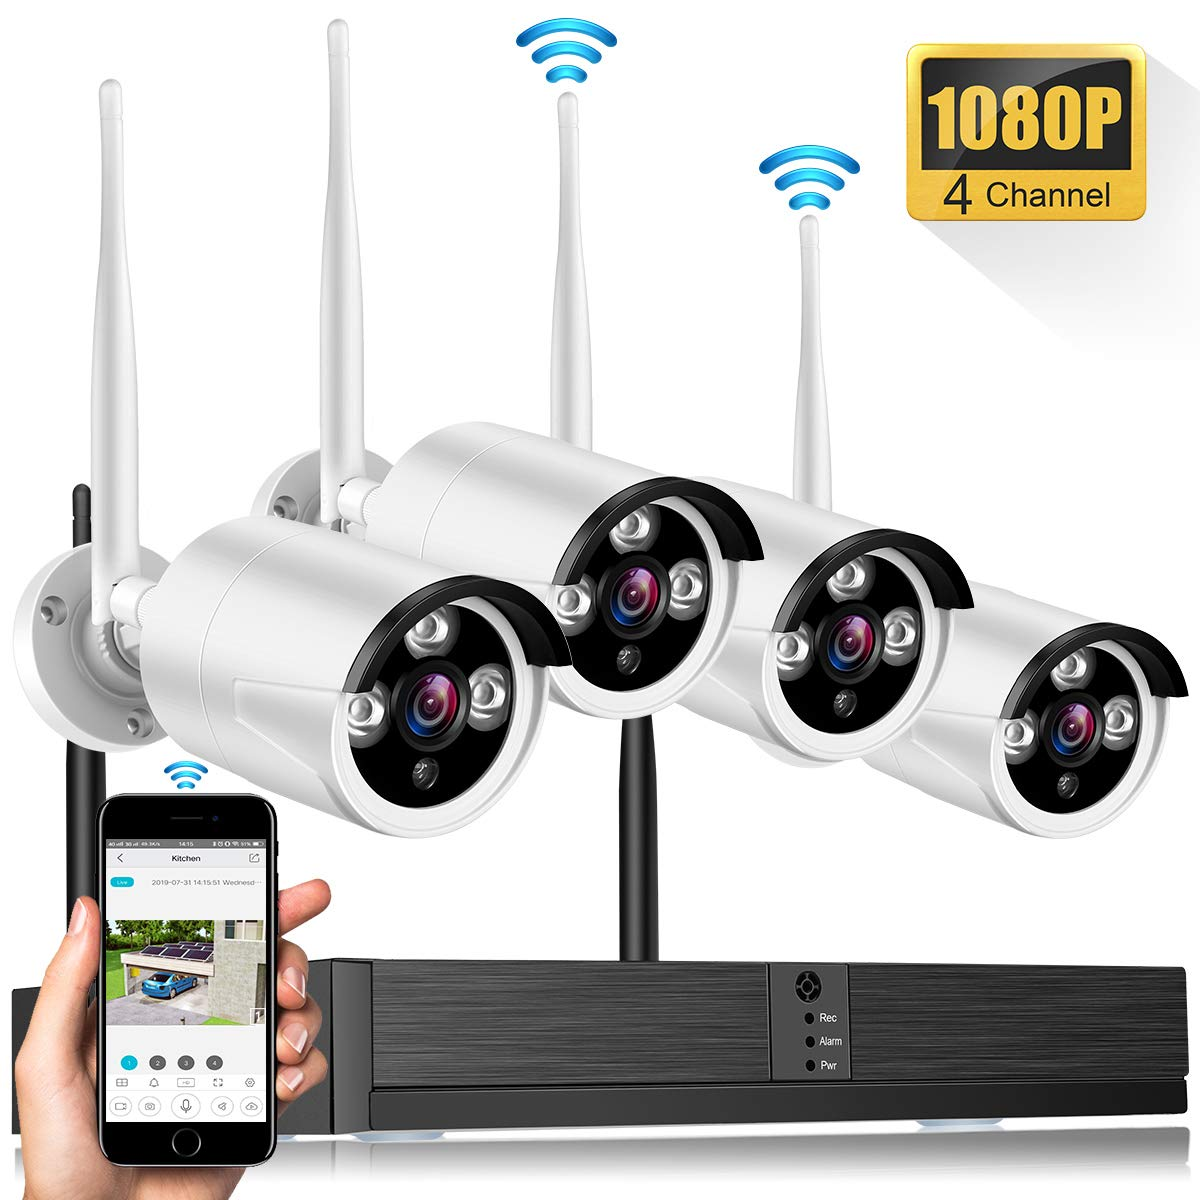 Wireless Security Camera System, Network Video Recorder Camera Working Range of 500 FT,4CH 1080P NVR 4Pcs H.265 2MP Indoor/Outdoor WiFi Surveillance Cameras, Night Vision, Easy Remote View, No HDD by TOMLOV